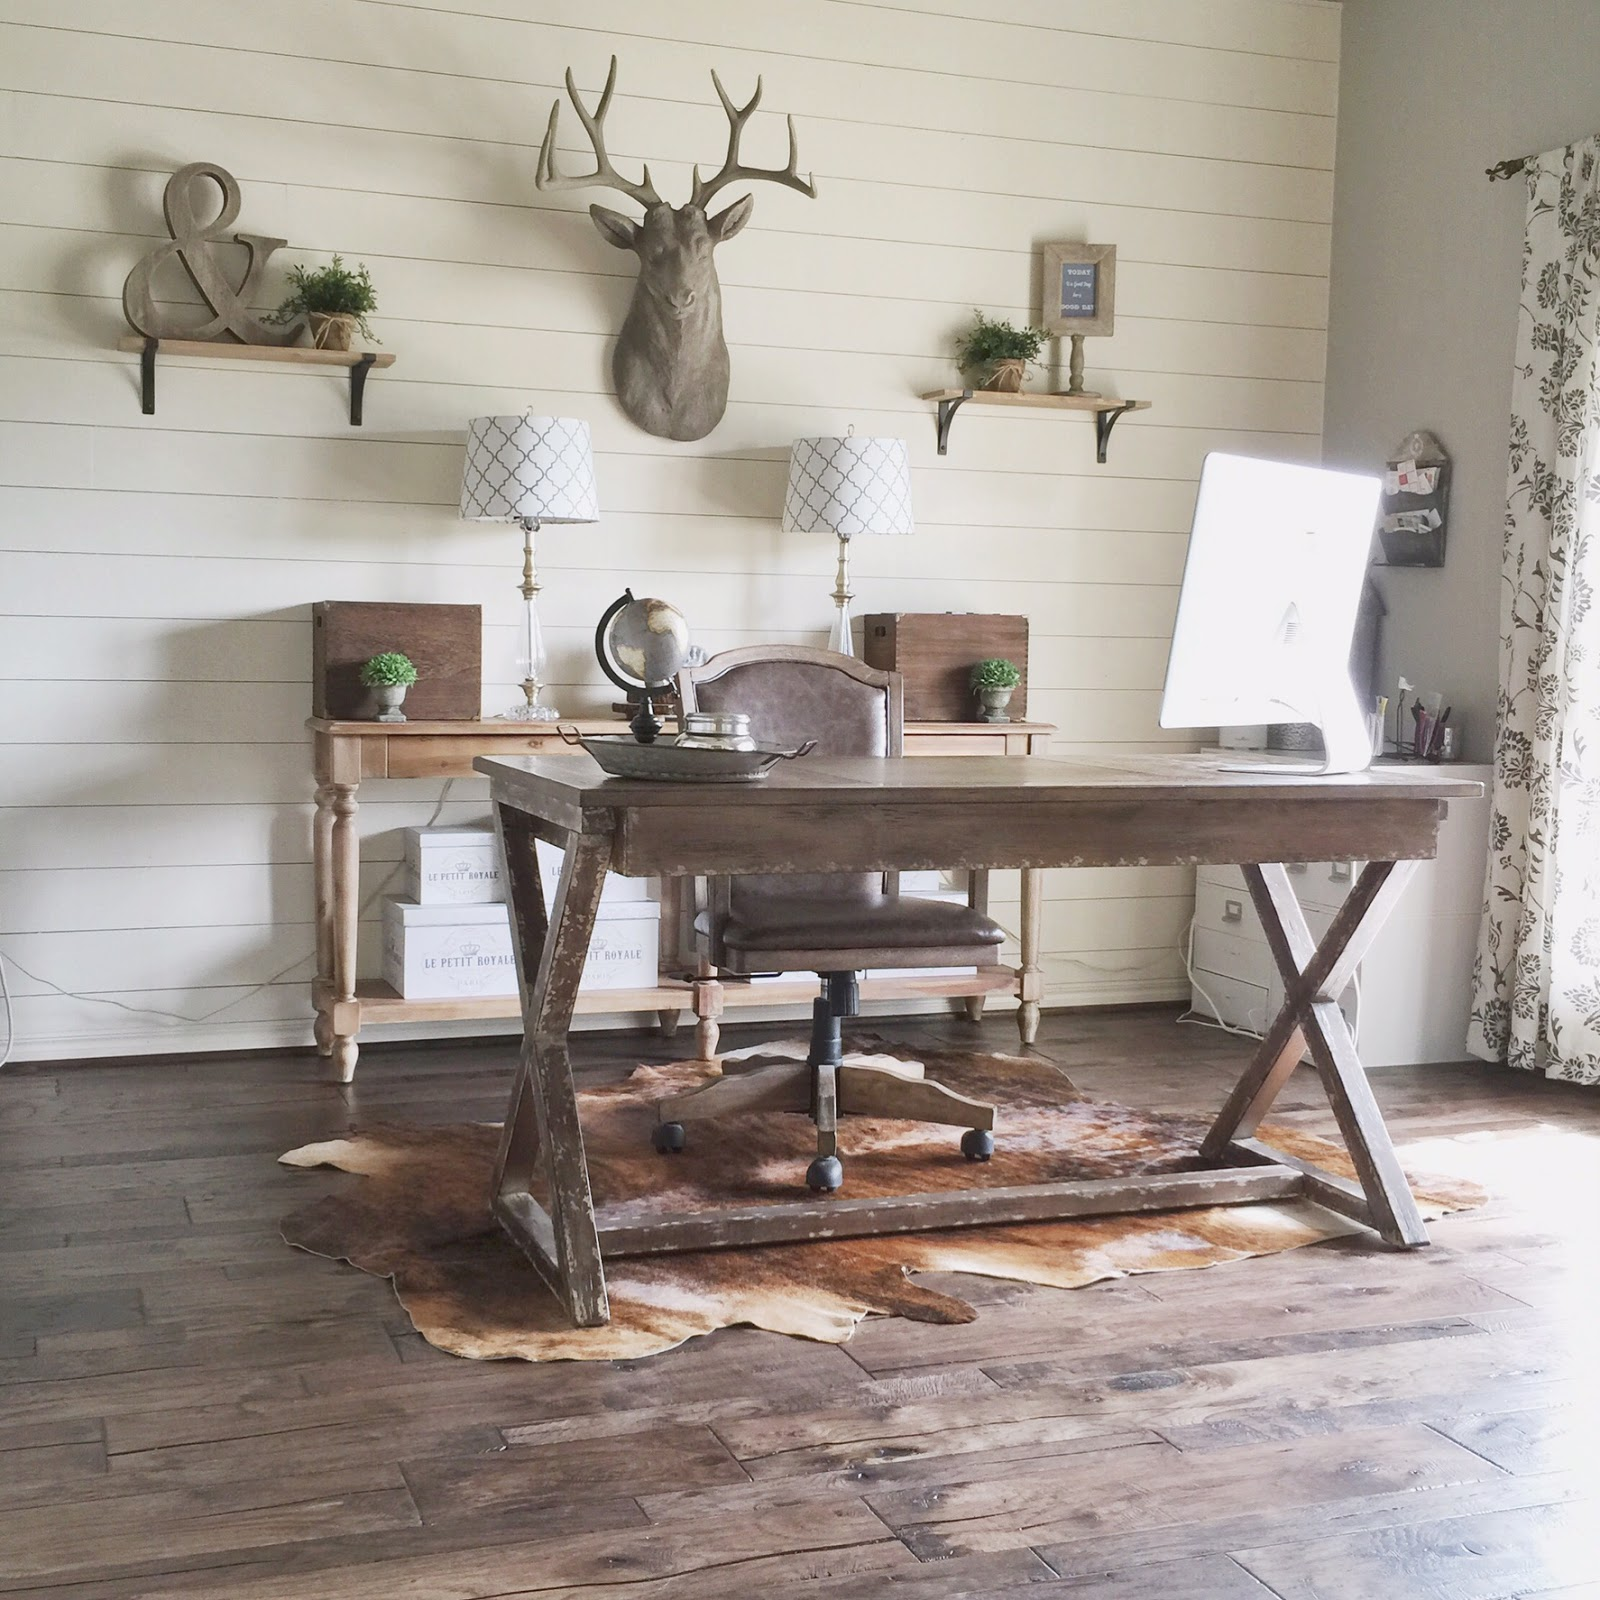 Rustic Decor Ideas Diy: Rustic Modern Home Office Design